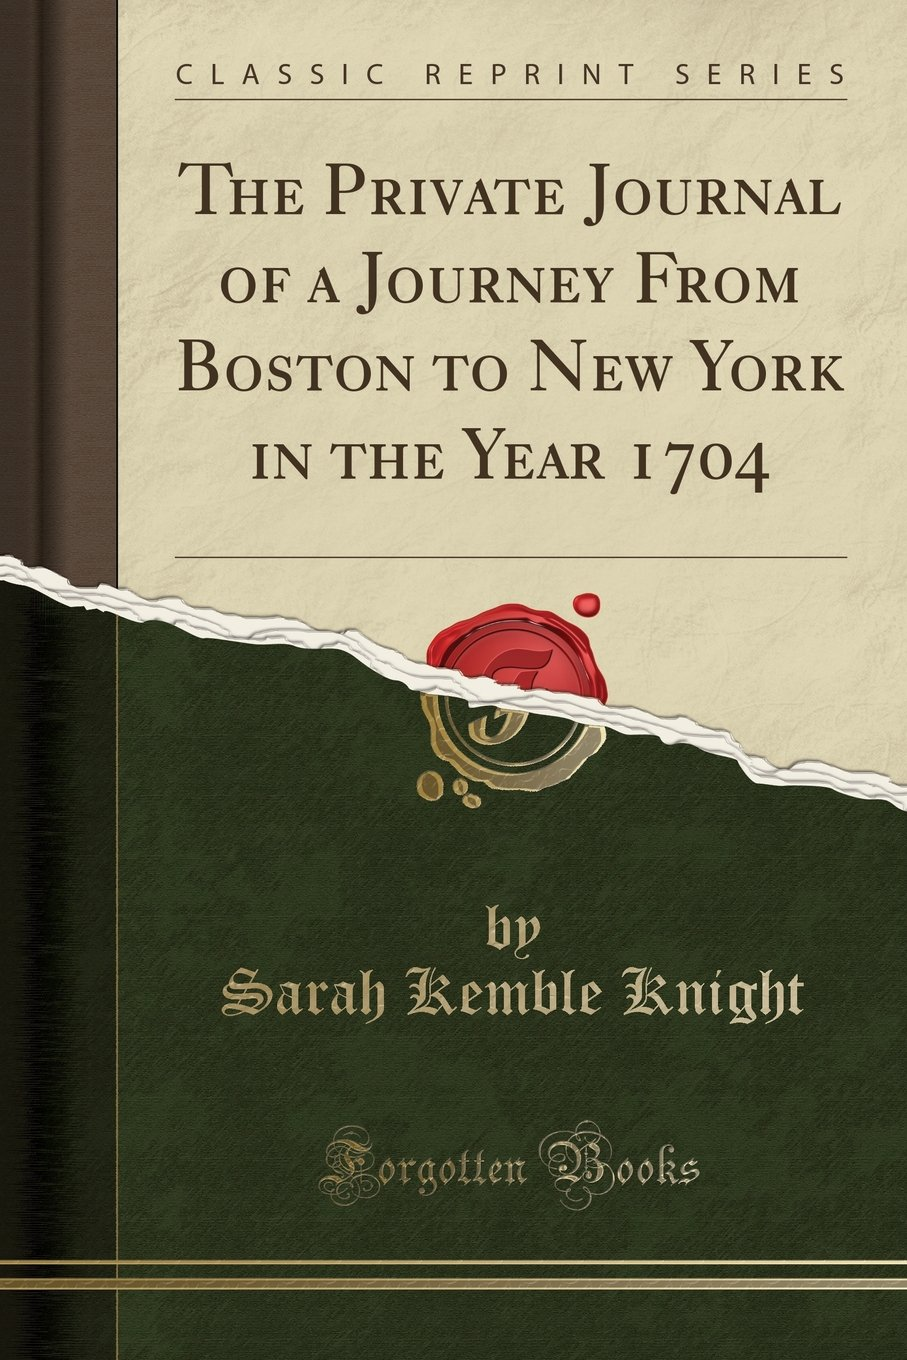 The Private Journal of a Journey From Boston to New York in the Year 1704 (Classic Reprint)